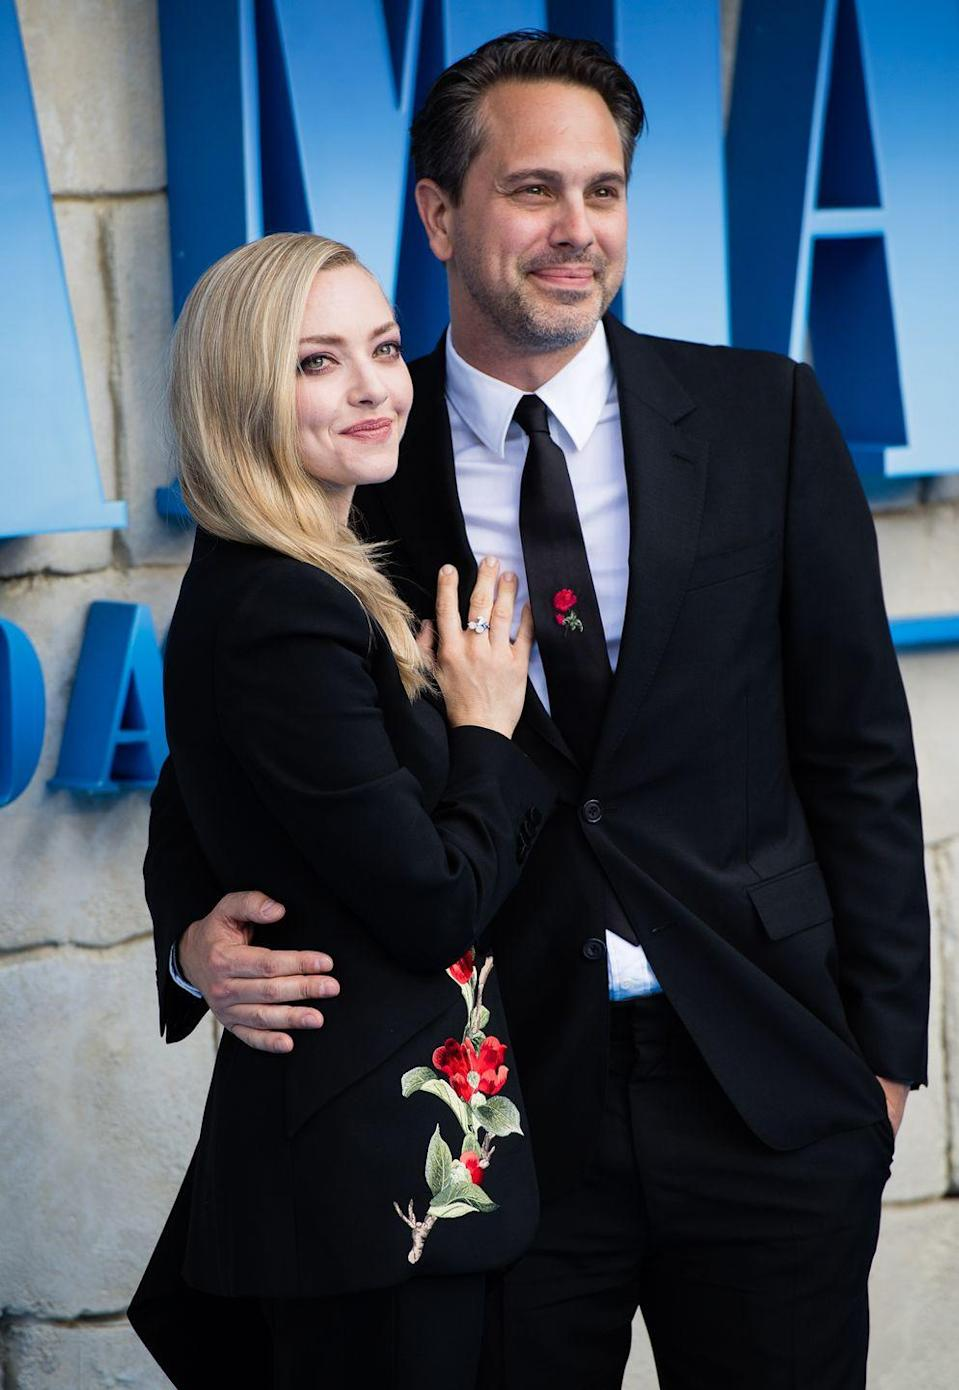 """<p><strong>How long they've been together: </strong>Although they fell in love on the set of <em>The Last Word </em>in 2016, Seyfried and Sadoski had previously worked together on Broadway while they were both in other relationships. """"[He] never flirted, never disrespected his wife. That was another reason why I thought, later on, that I could marry him,"""" Seyfried told <a href=""""https://www.net-a-porter.com/us/en/porter/article-92b730d7ec3ab146?cm_mmc=LinkshareUS-_-je6NUbpObpQ-_-Custom-_-LinkBuilder&siteID=je6NUbpObpQ-XtaNoNfqZvxprbxSs3OFqw&VigLink=VigLink&dclid=CjgKEAiAzanuBRCgyIvk8sKXwlQSJADylfoDANBkKum7W0DU5elkbOcCApqua76tMm9bWDX3_AwSEfD_BwE"""" rel=""""nofollow noopener"""" target=""""_blank"""" data-ylk=""""slk:Porter Magazine"""" class=""""link rapid-noclick-resp"""">Porter Magazine</a>. Now, married since 2017, the couple are parents to daughter Nina. </p><p><strong><strong>Why you forgot they're <strong>together</strong>:</strong> </strong>After some high-profile breakups, Seyfried and Sadoski prefer to keep their relationship as private as their wedding ceremony–which included a two-person ceremony, a Free People dress, and a reception at their neighborhood café. <strong><br></strong></p>"""